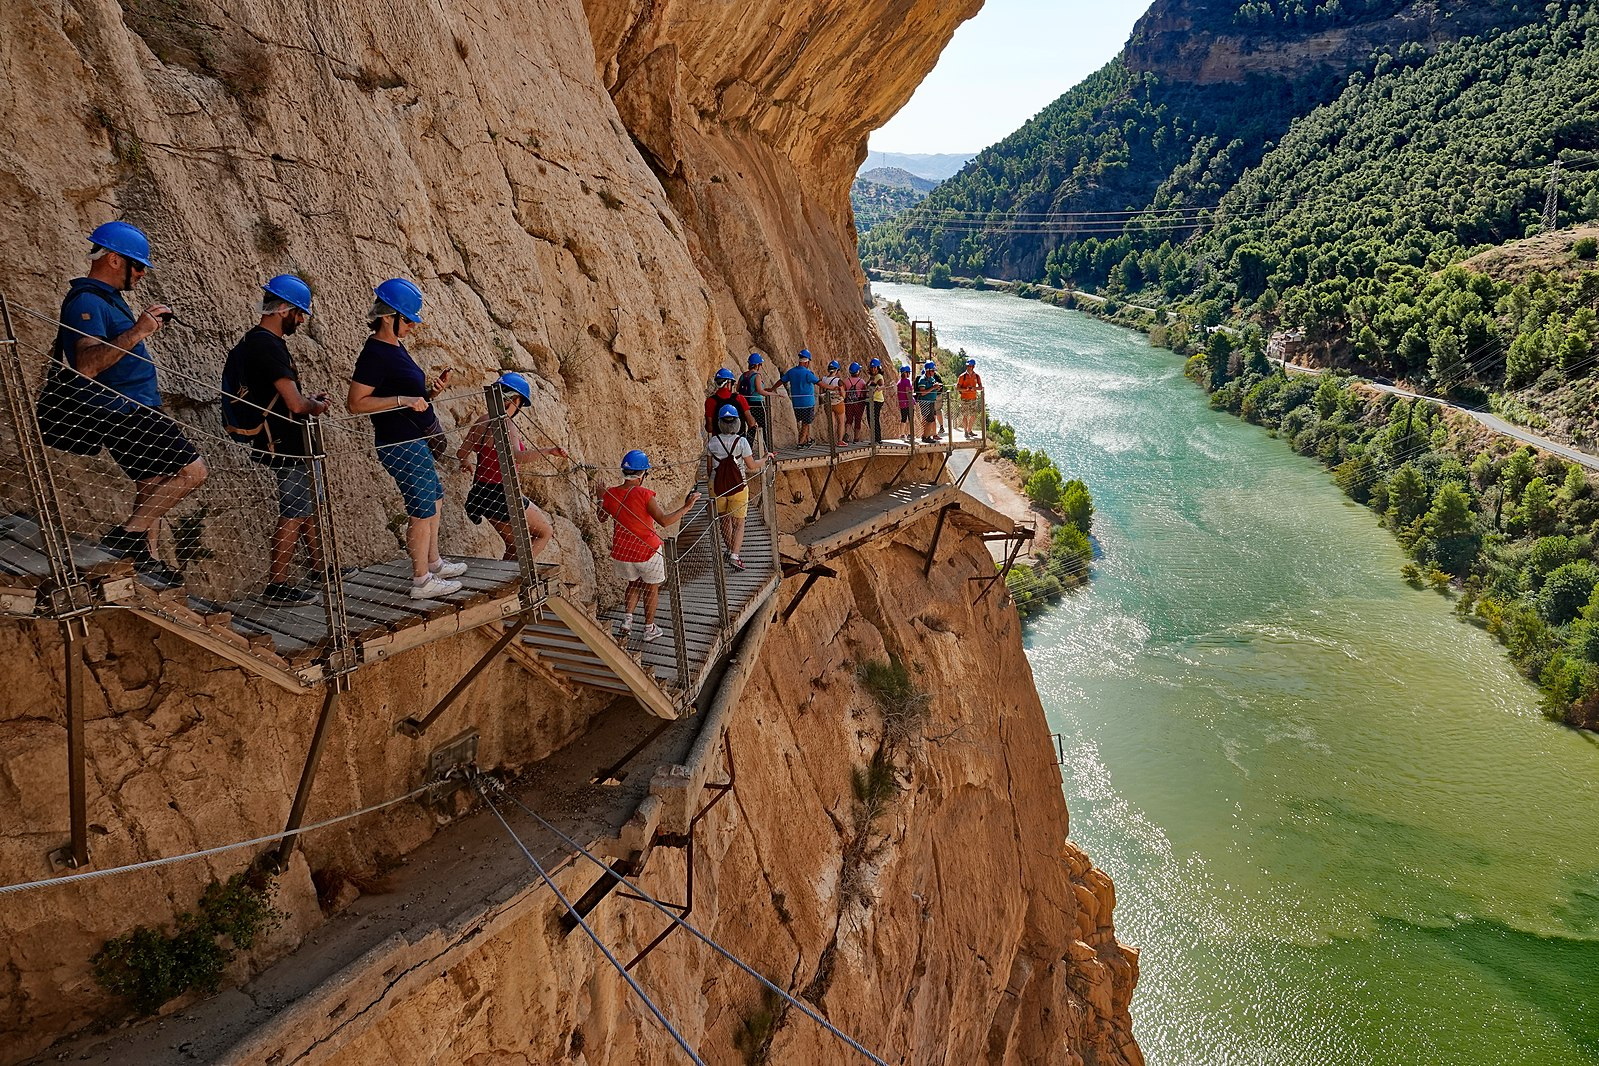 """If you are feeling brave, then one of the most spectacular gorge views is from the Caminito del Rey, The King's Little Path. Pinned to the steep walls of the El Chorro Gorge, the 1 metre wide wooden walkway hangs 100 meters above the river below. It has been known in the past as the """"world's most dangerous walkway"""" following five deaths in 1999 and 2000. After closing for four years, the Caminito reopened in 2014 after repairs and new safety features were added."""